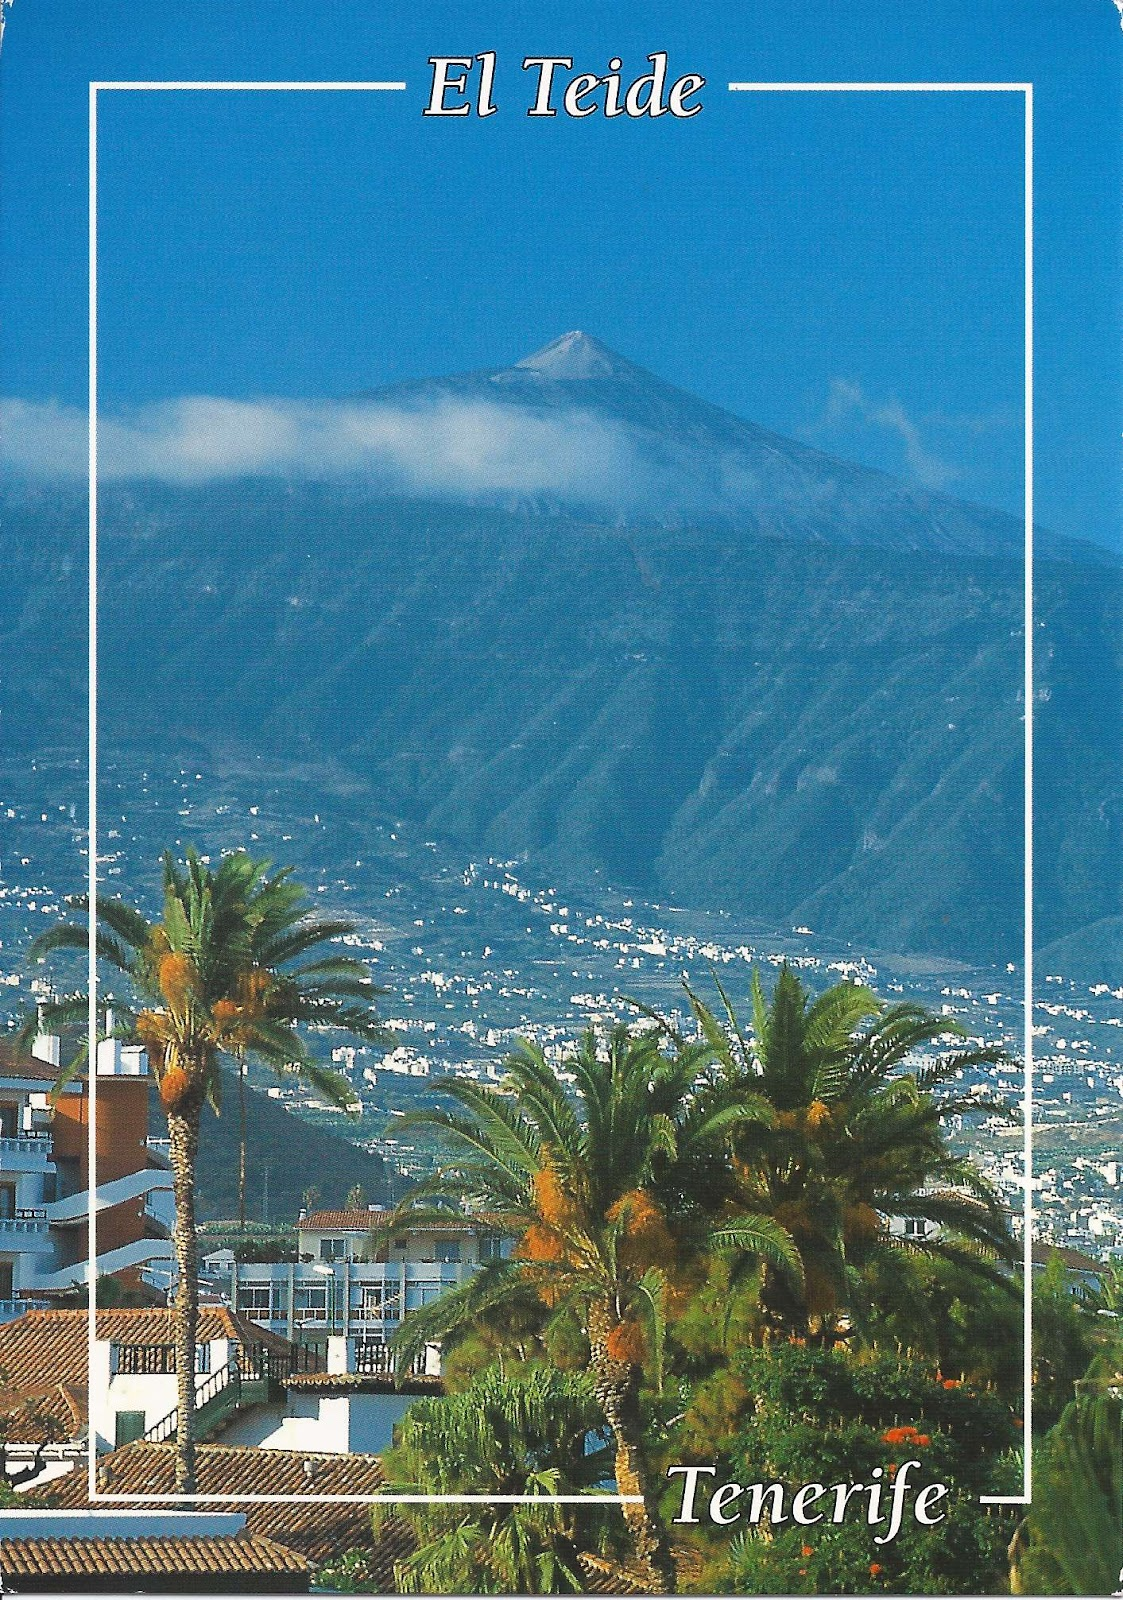 A Journey Of Postcards: A Postcard From The Canary Islands